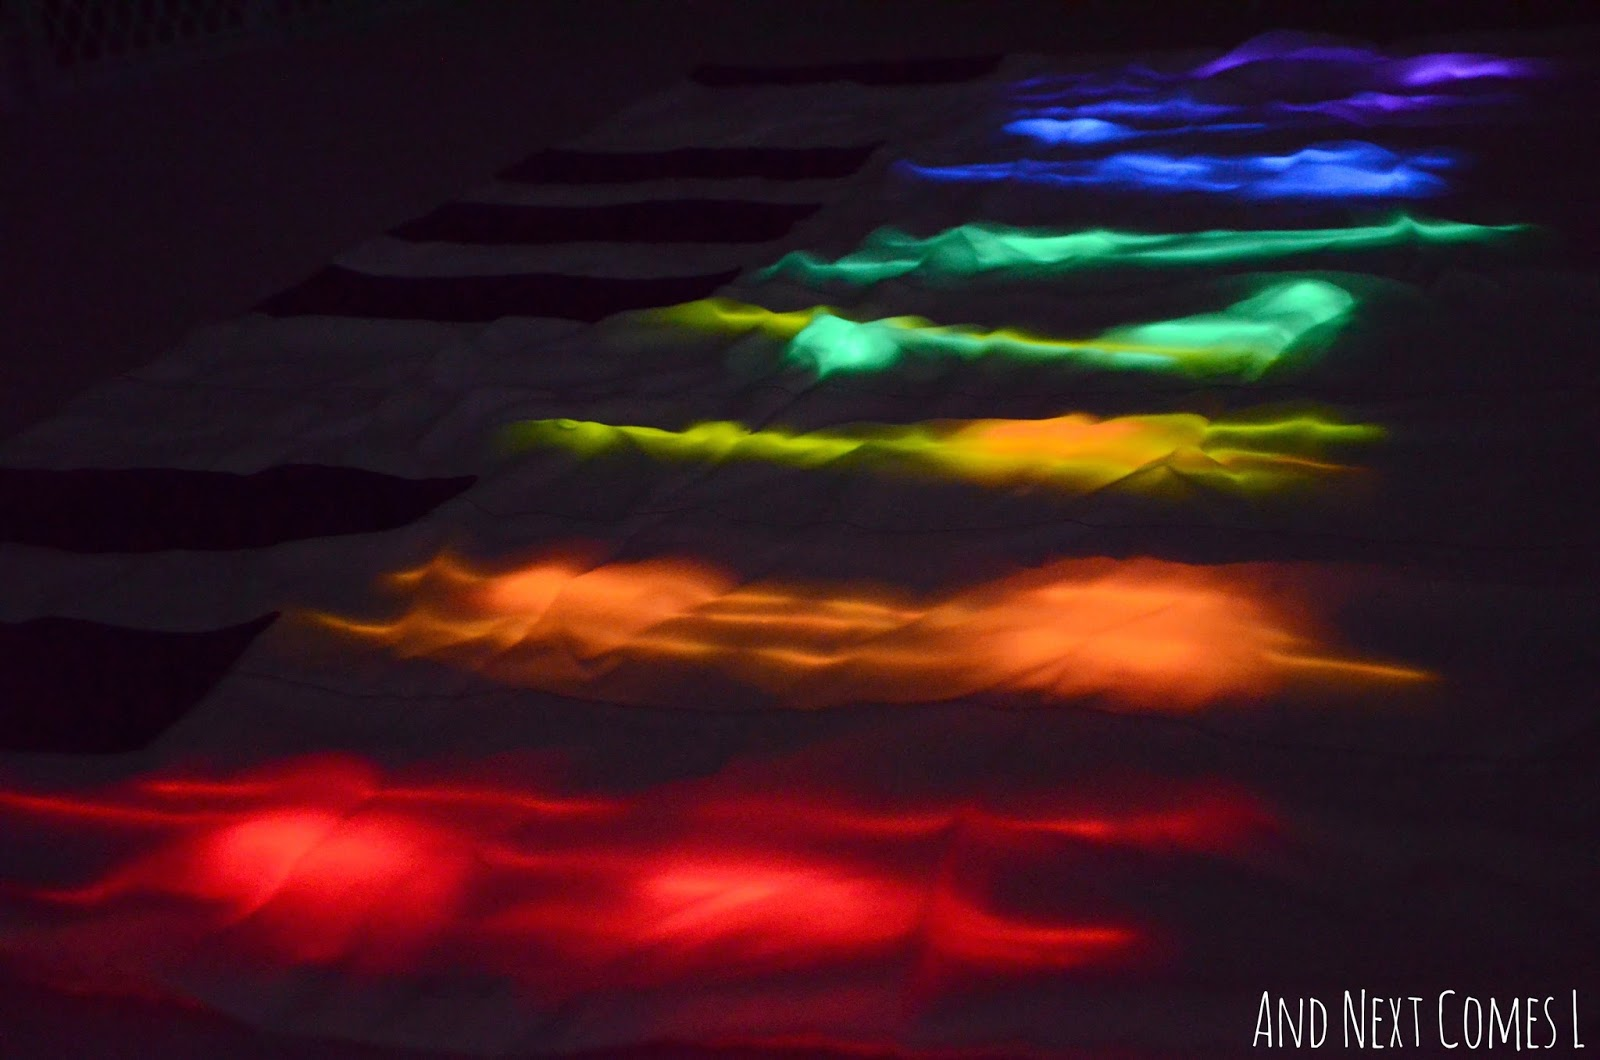 Homemade glowing floor piano from And Next Comes L